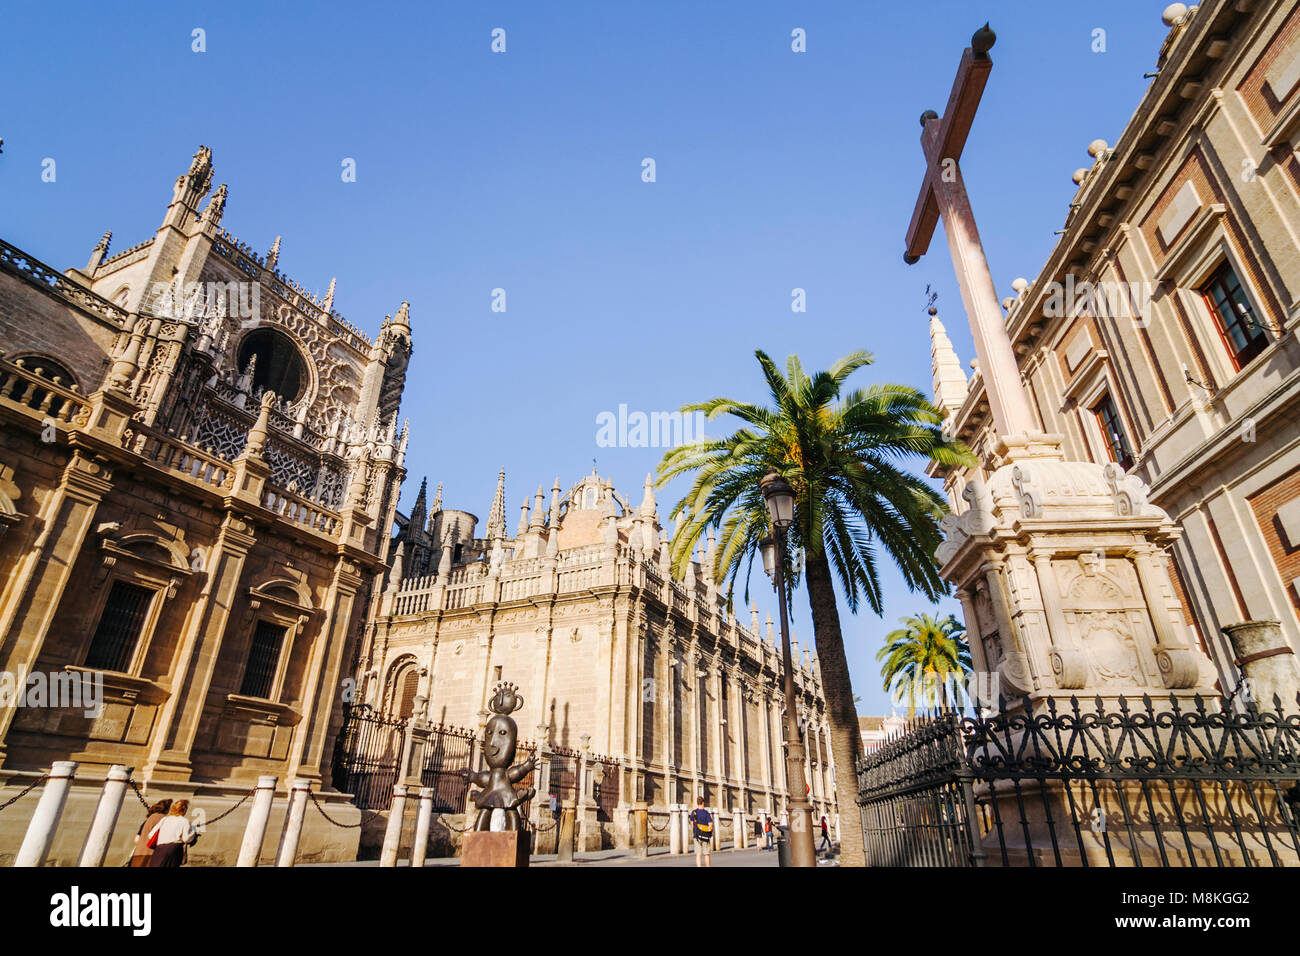 Seville, Andalusia, Spain : Unesco listed Cathedral of Seville, the largest Gothic structure in the world and General - Stock Image